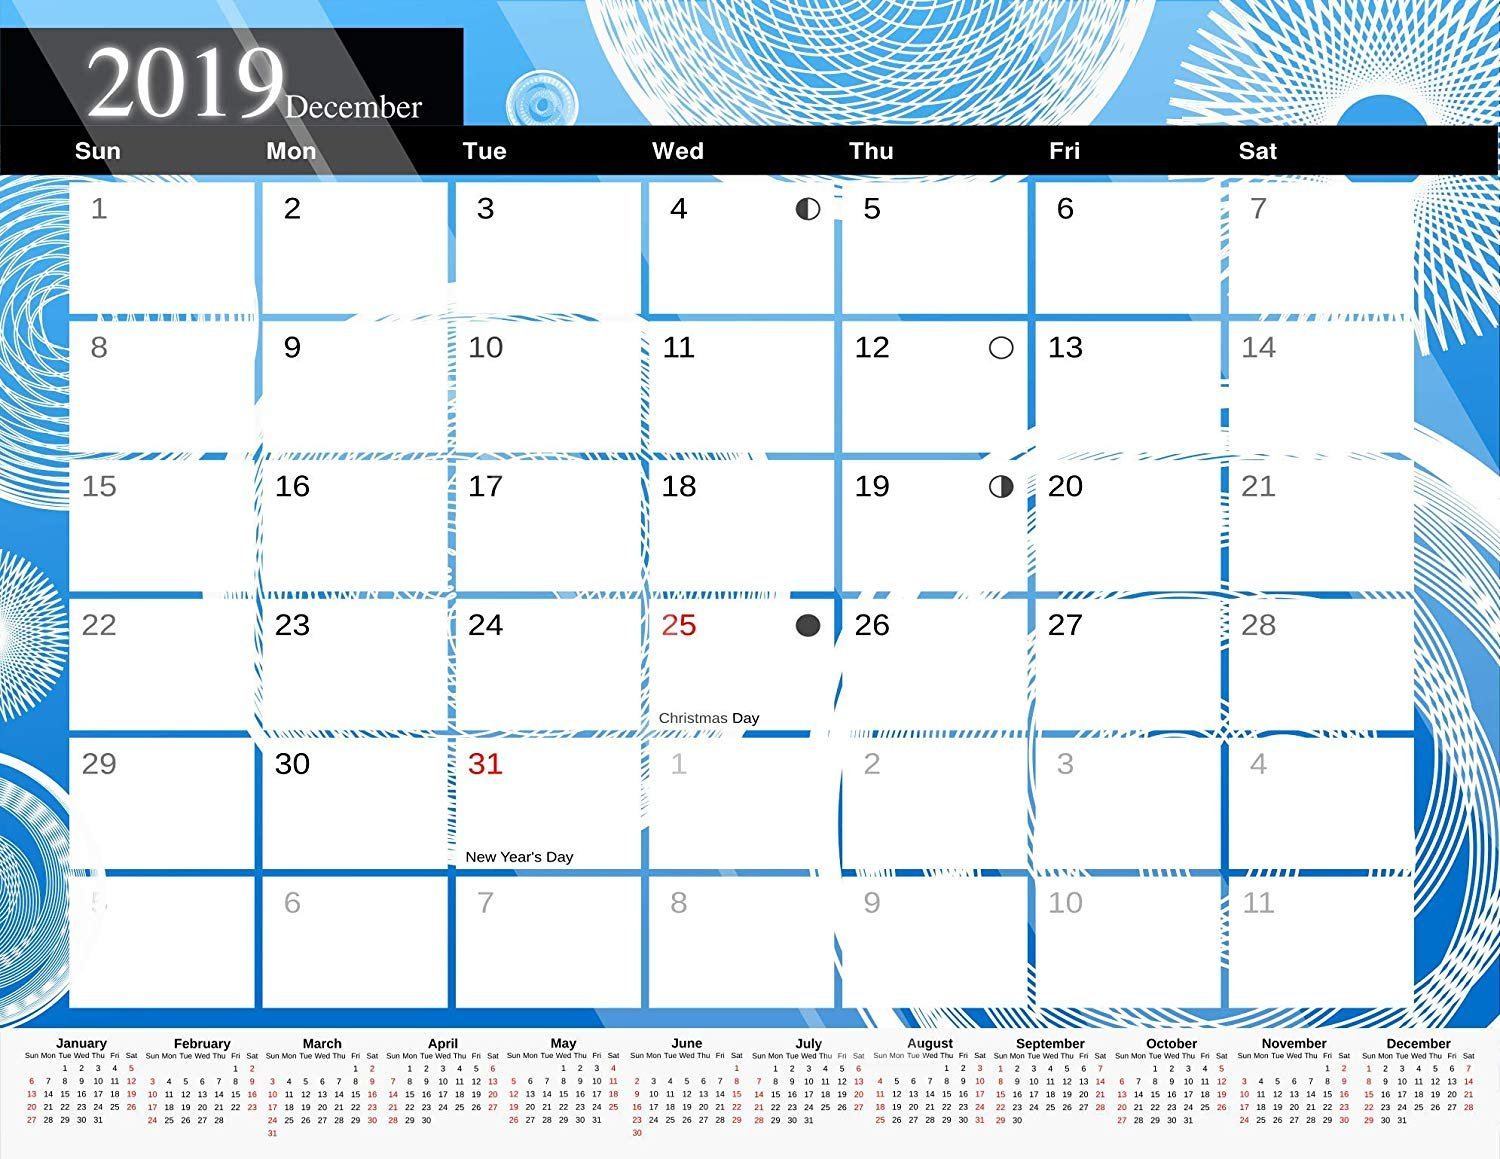 2019 Monthly Magnetic/Desk Calendar - 12 Months Desktop/Wall Calendar/Planner - (Edition #10)